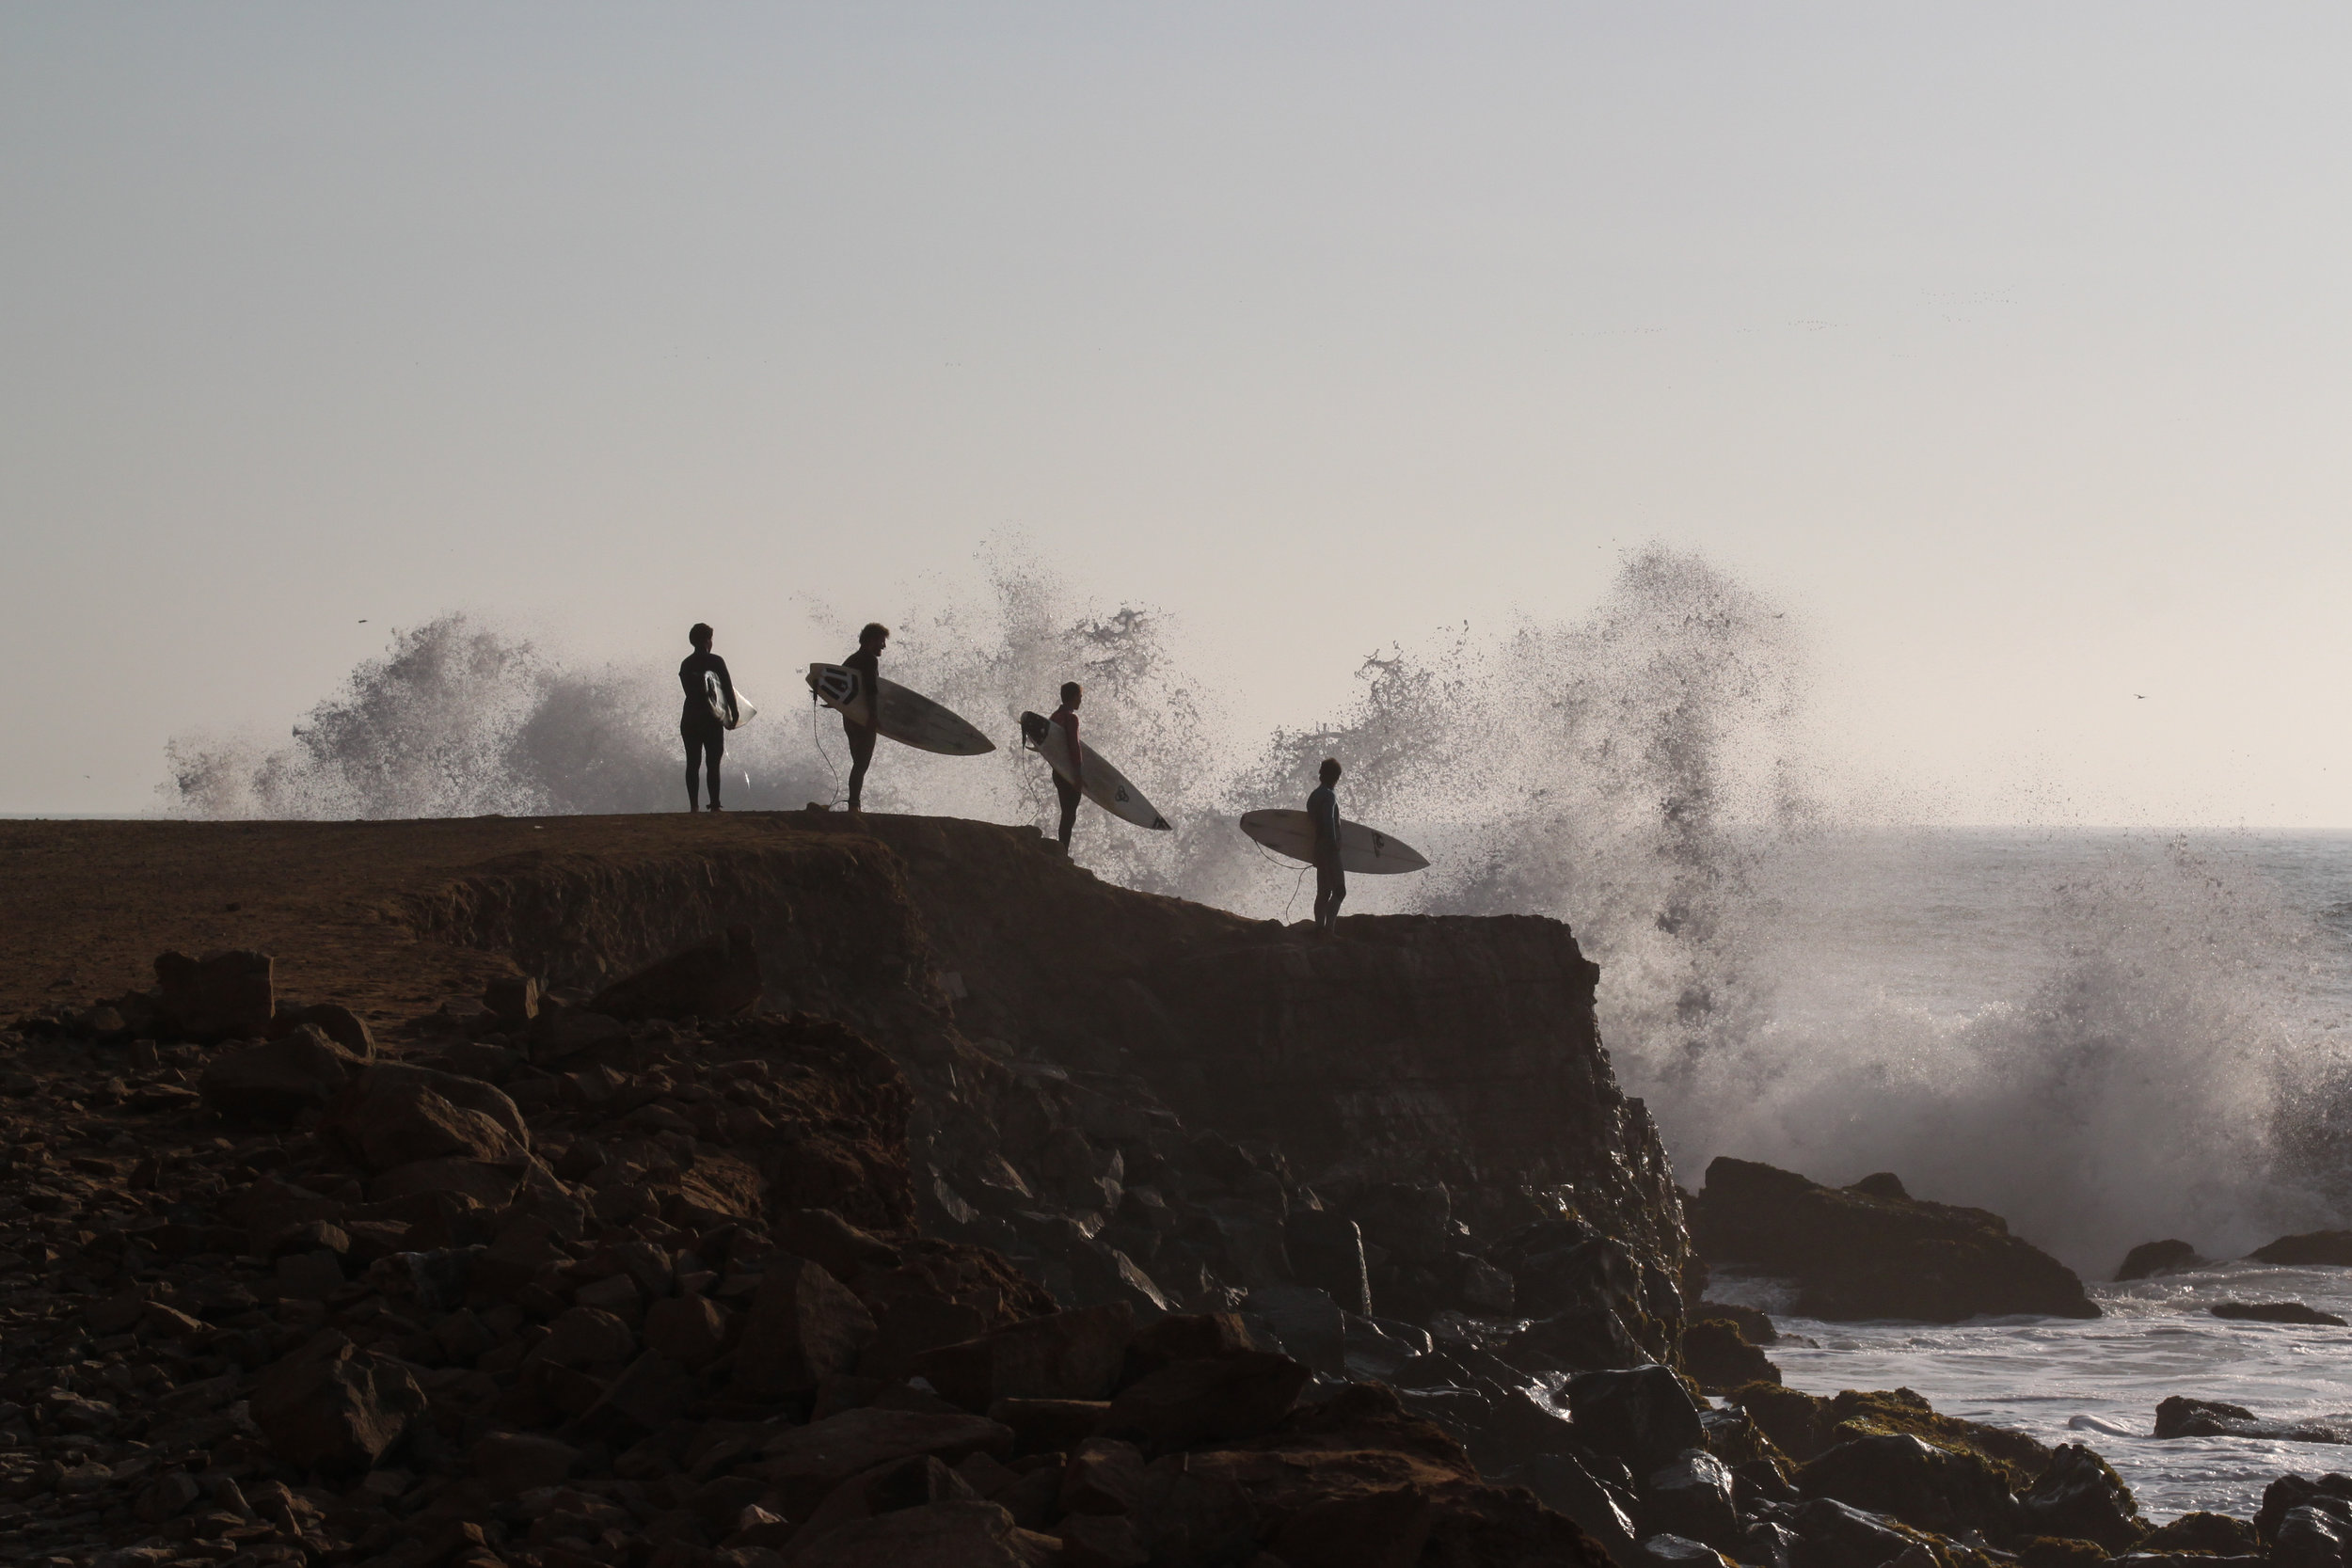 Surfers wait to enter the ocean during a bis swell at La Herraudra, Lima, Peru.